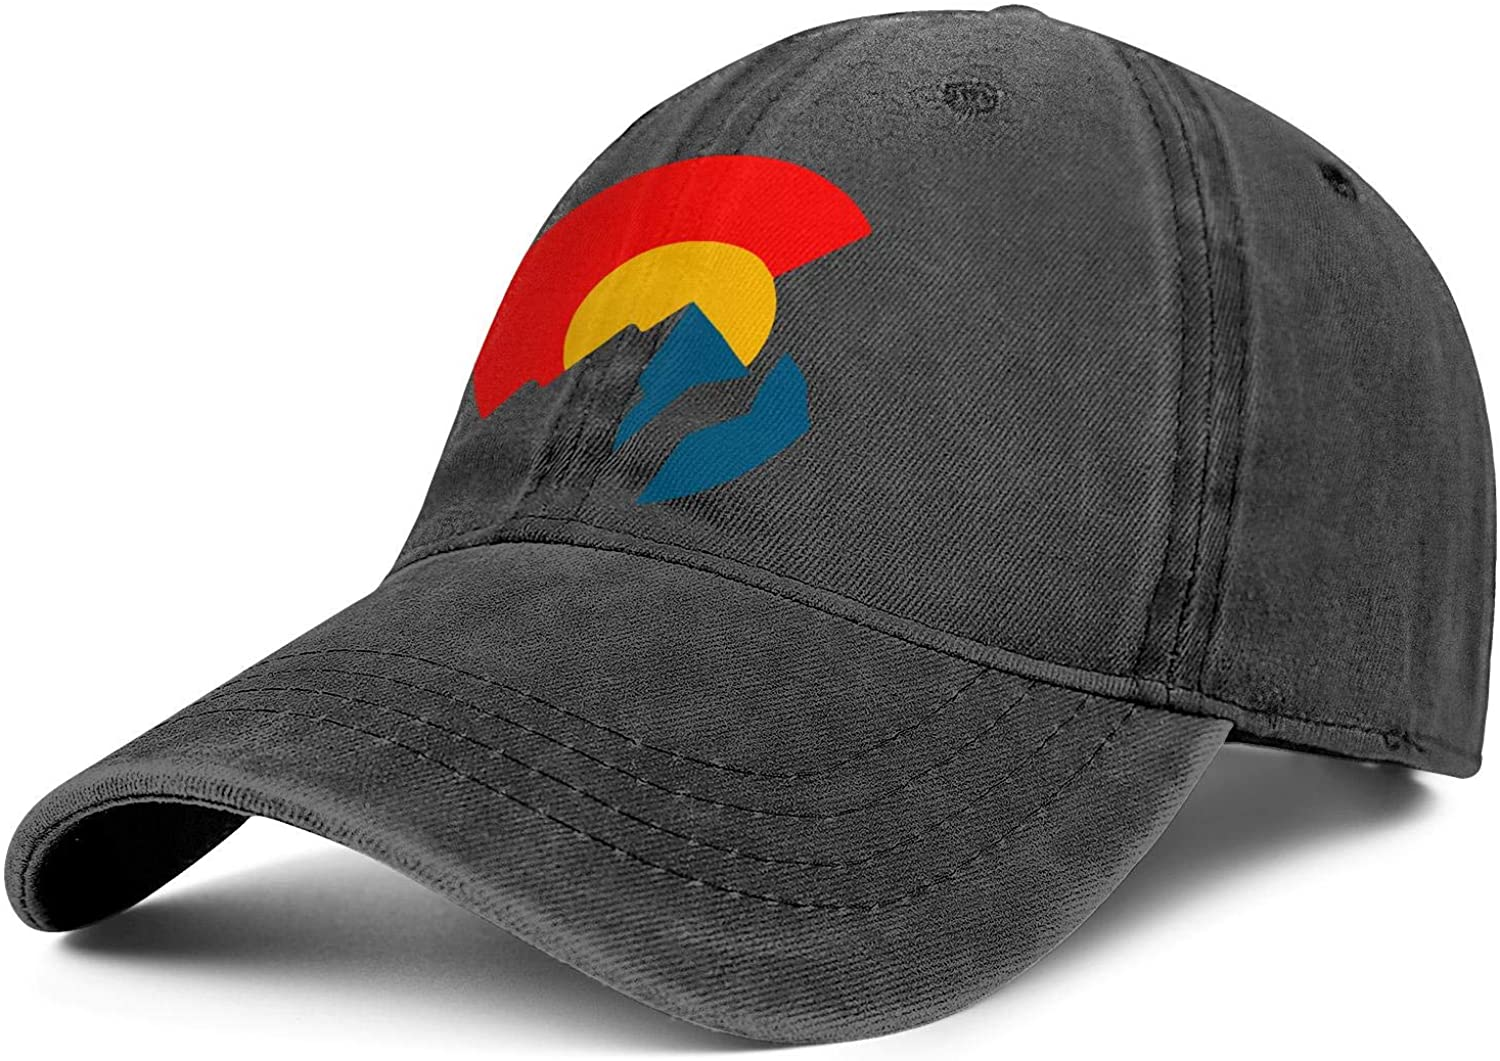 akndhys Unisex Cool Wash Cloth Dad Hat Adjustable Arkansas Flag and Territorial Map Fishing Baseball Hat